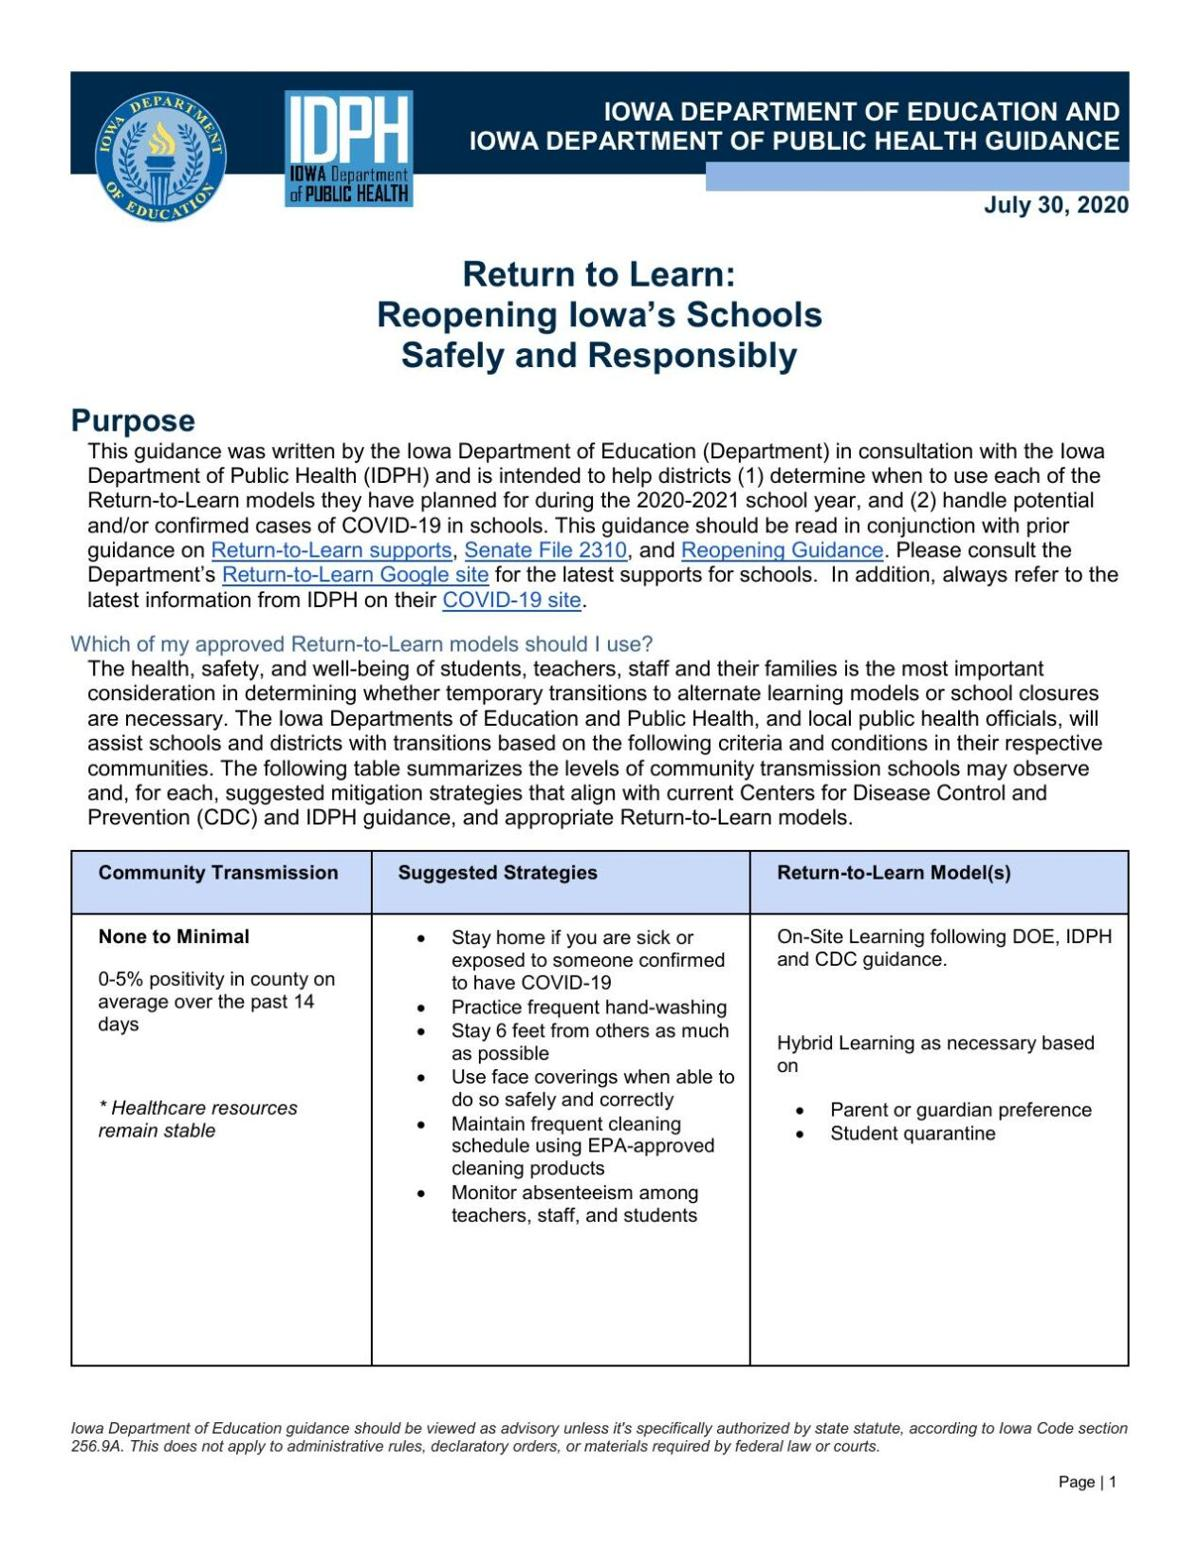 Return to Learn Guidelines July 30, 2020